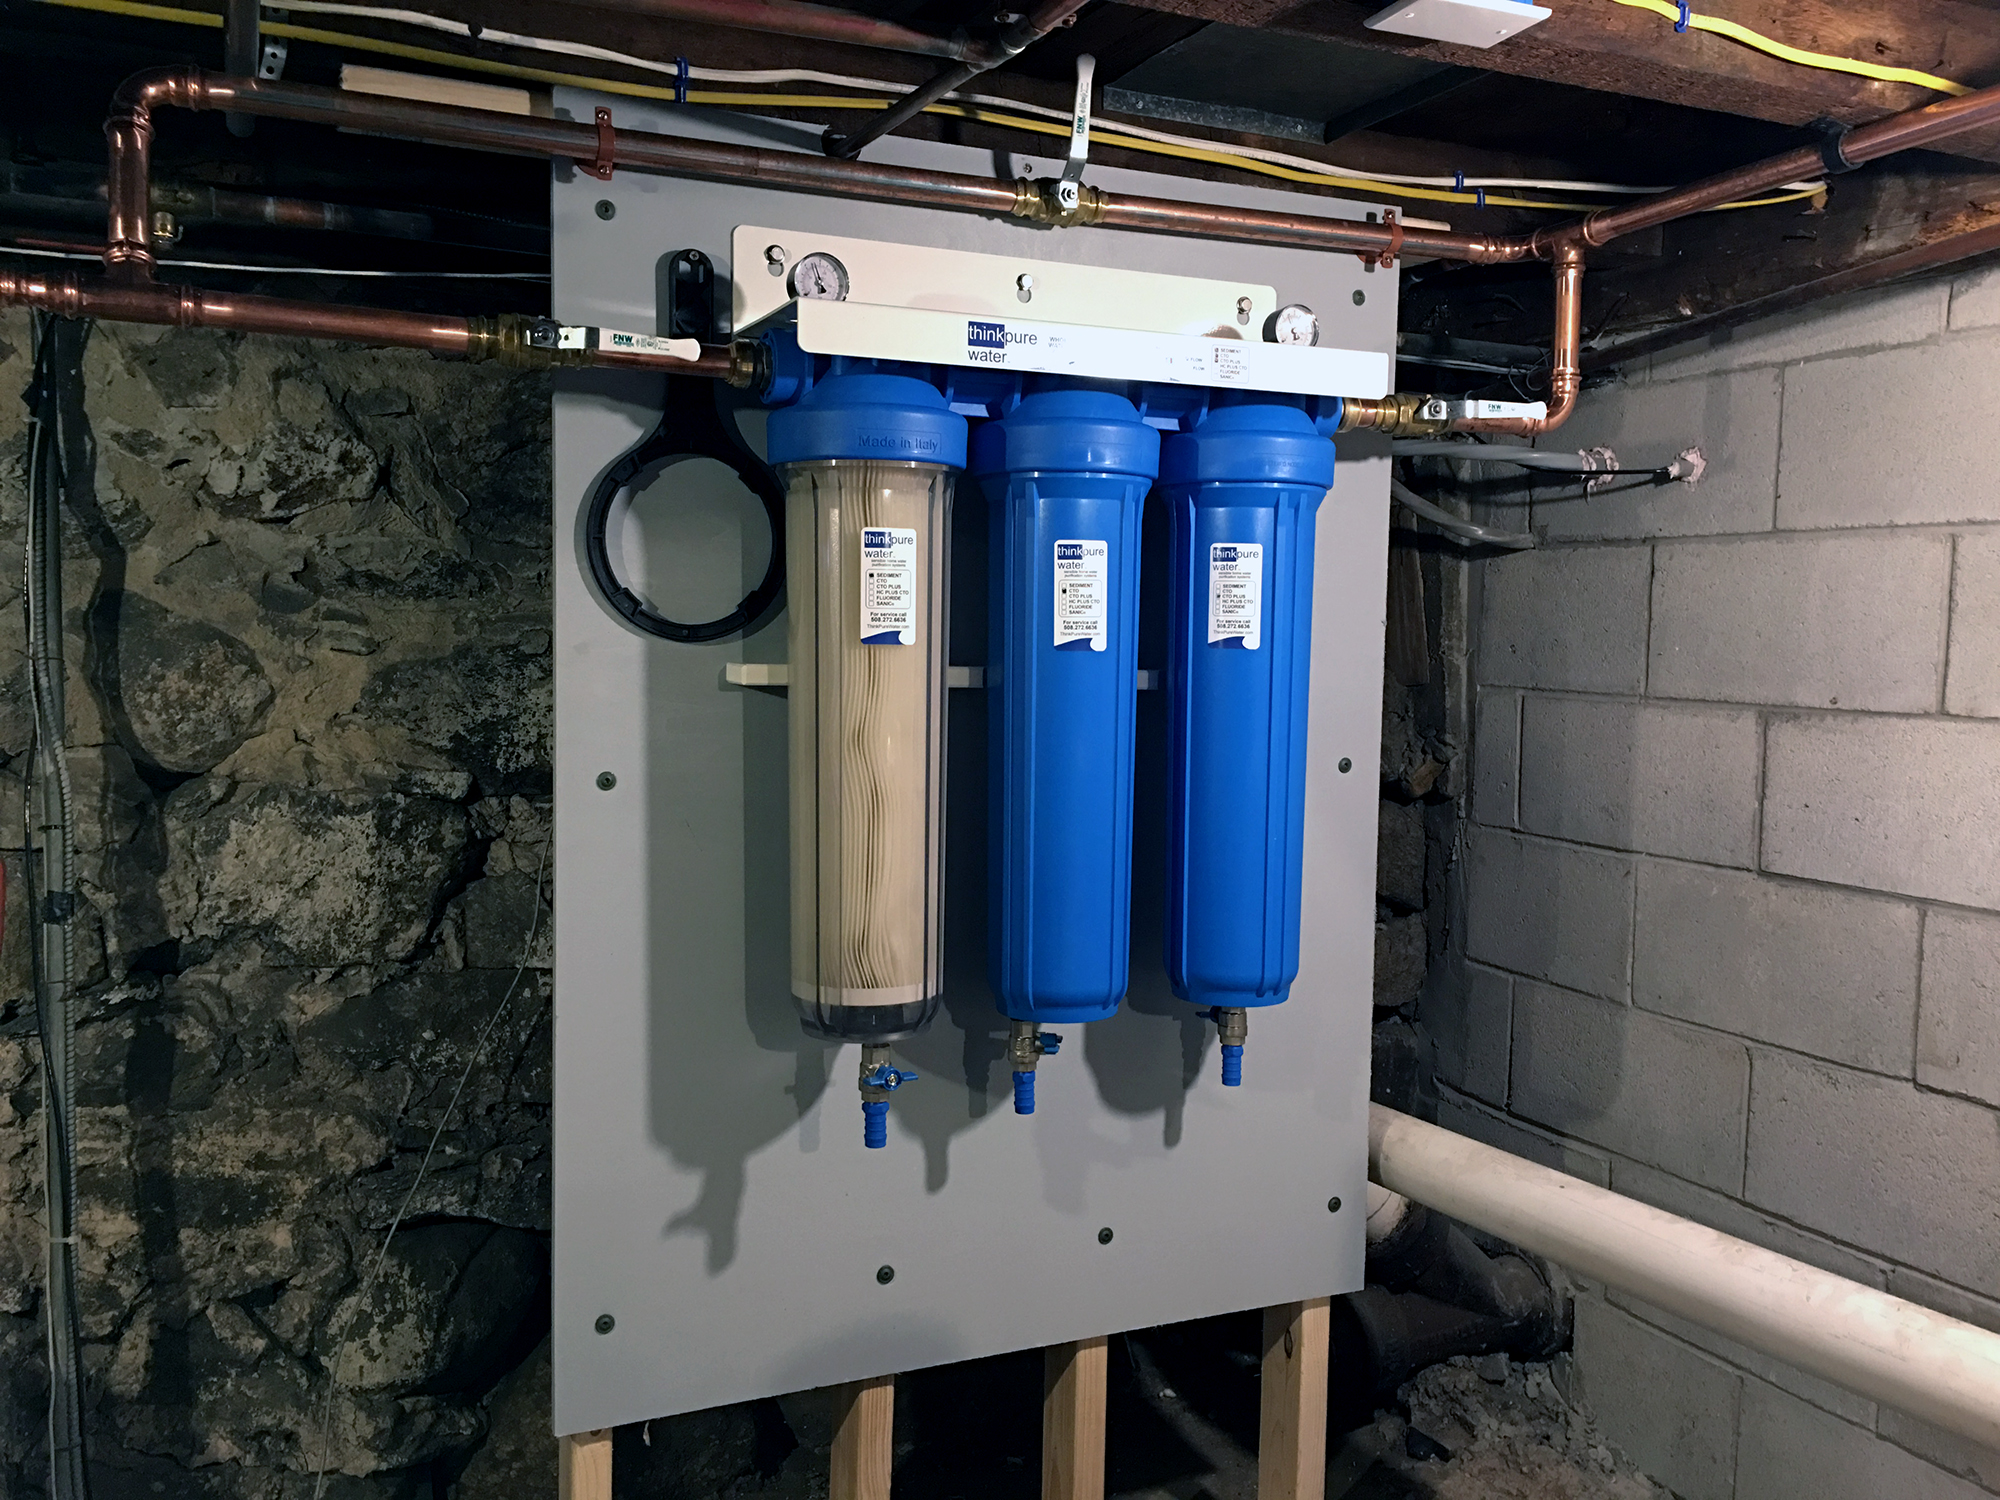 whole house filter system - Whole House Water Filtration System